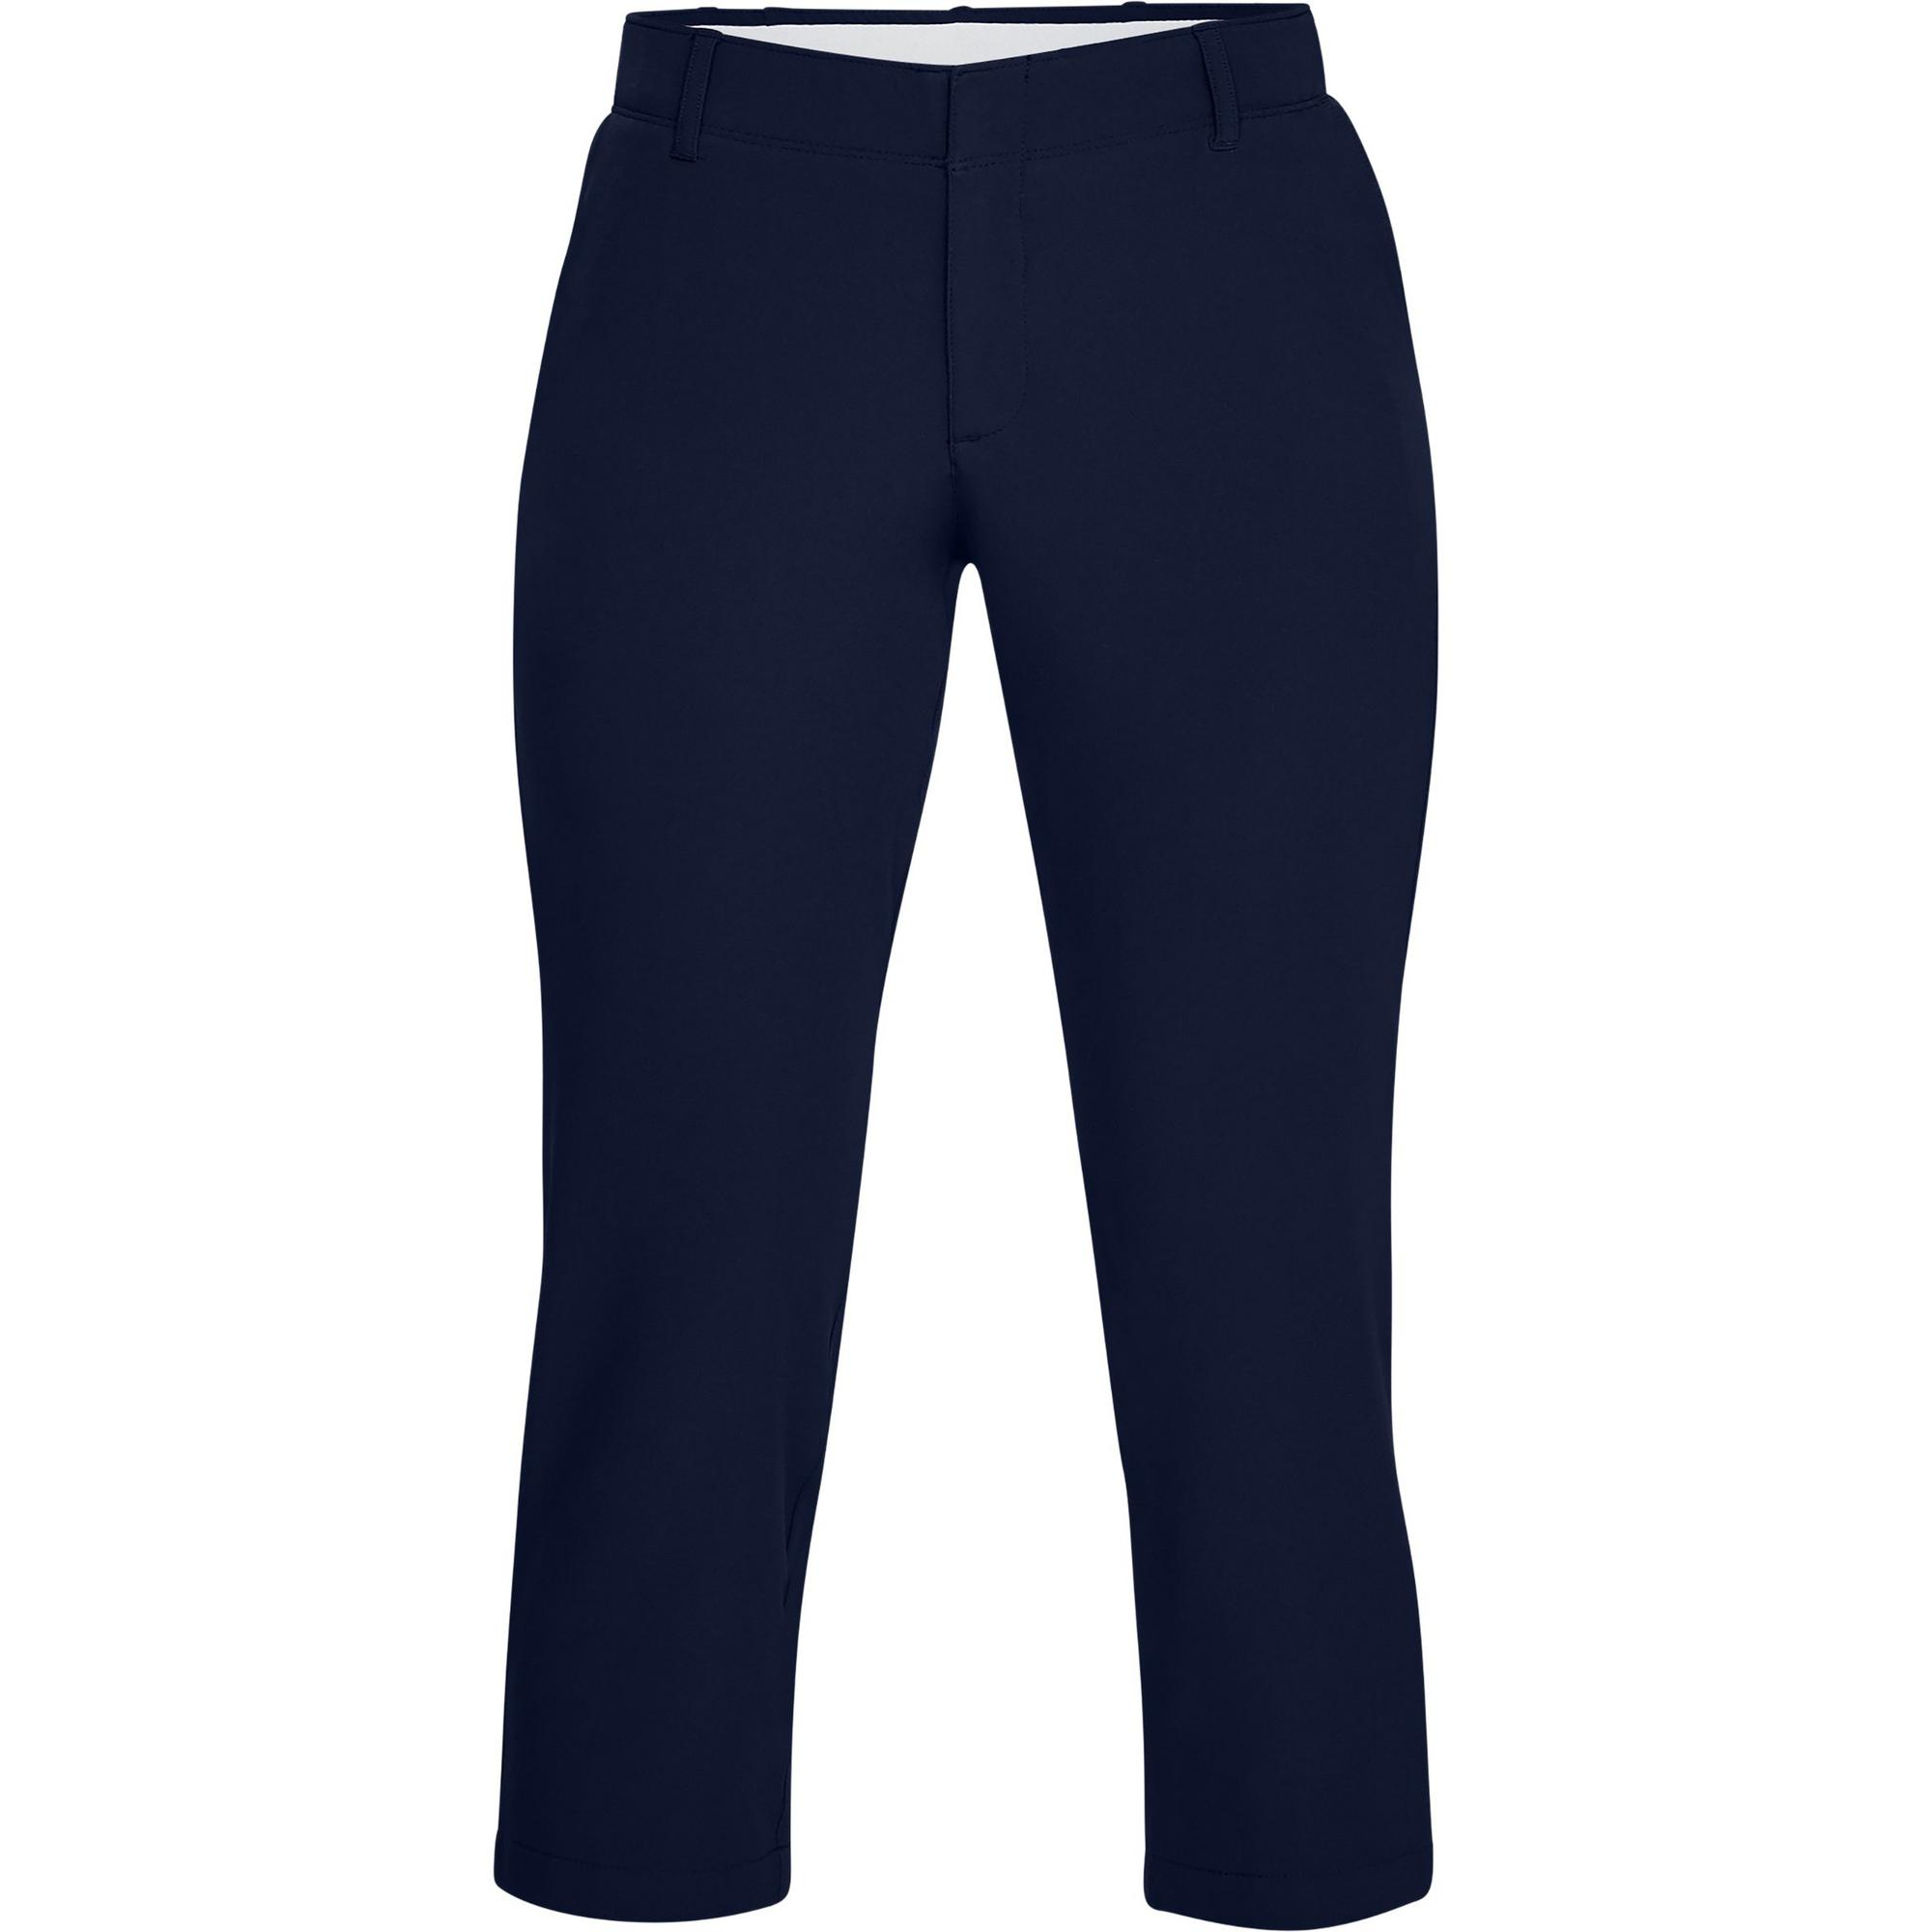 Women's Links Capri